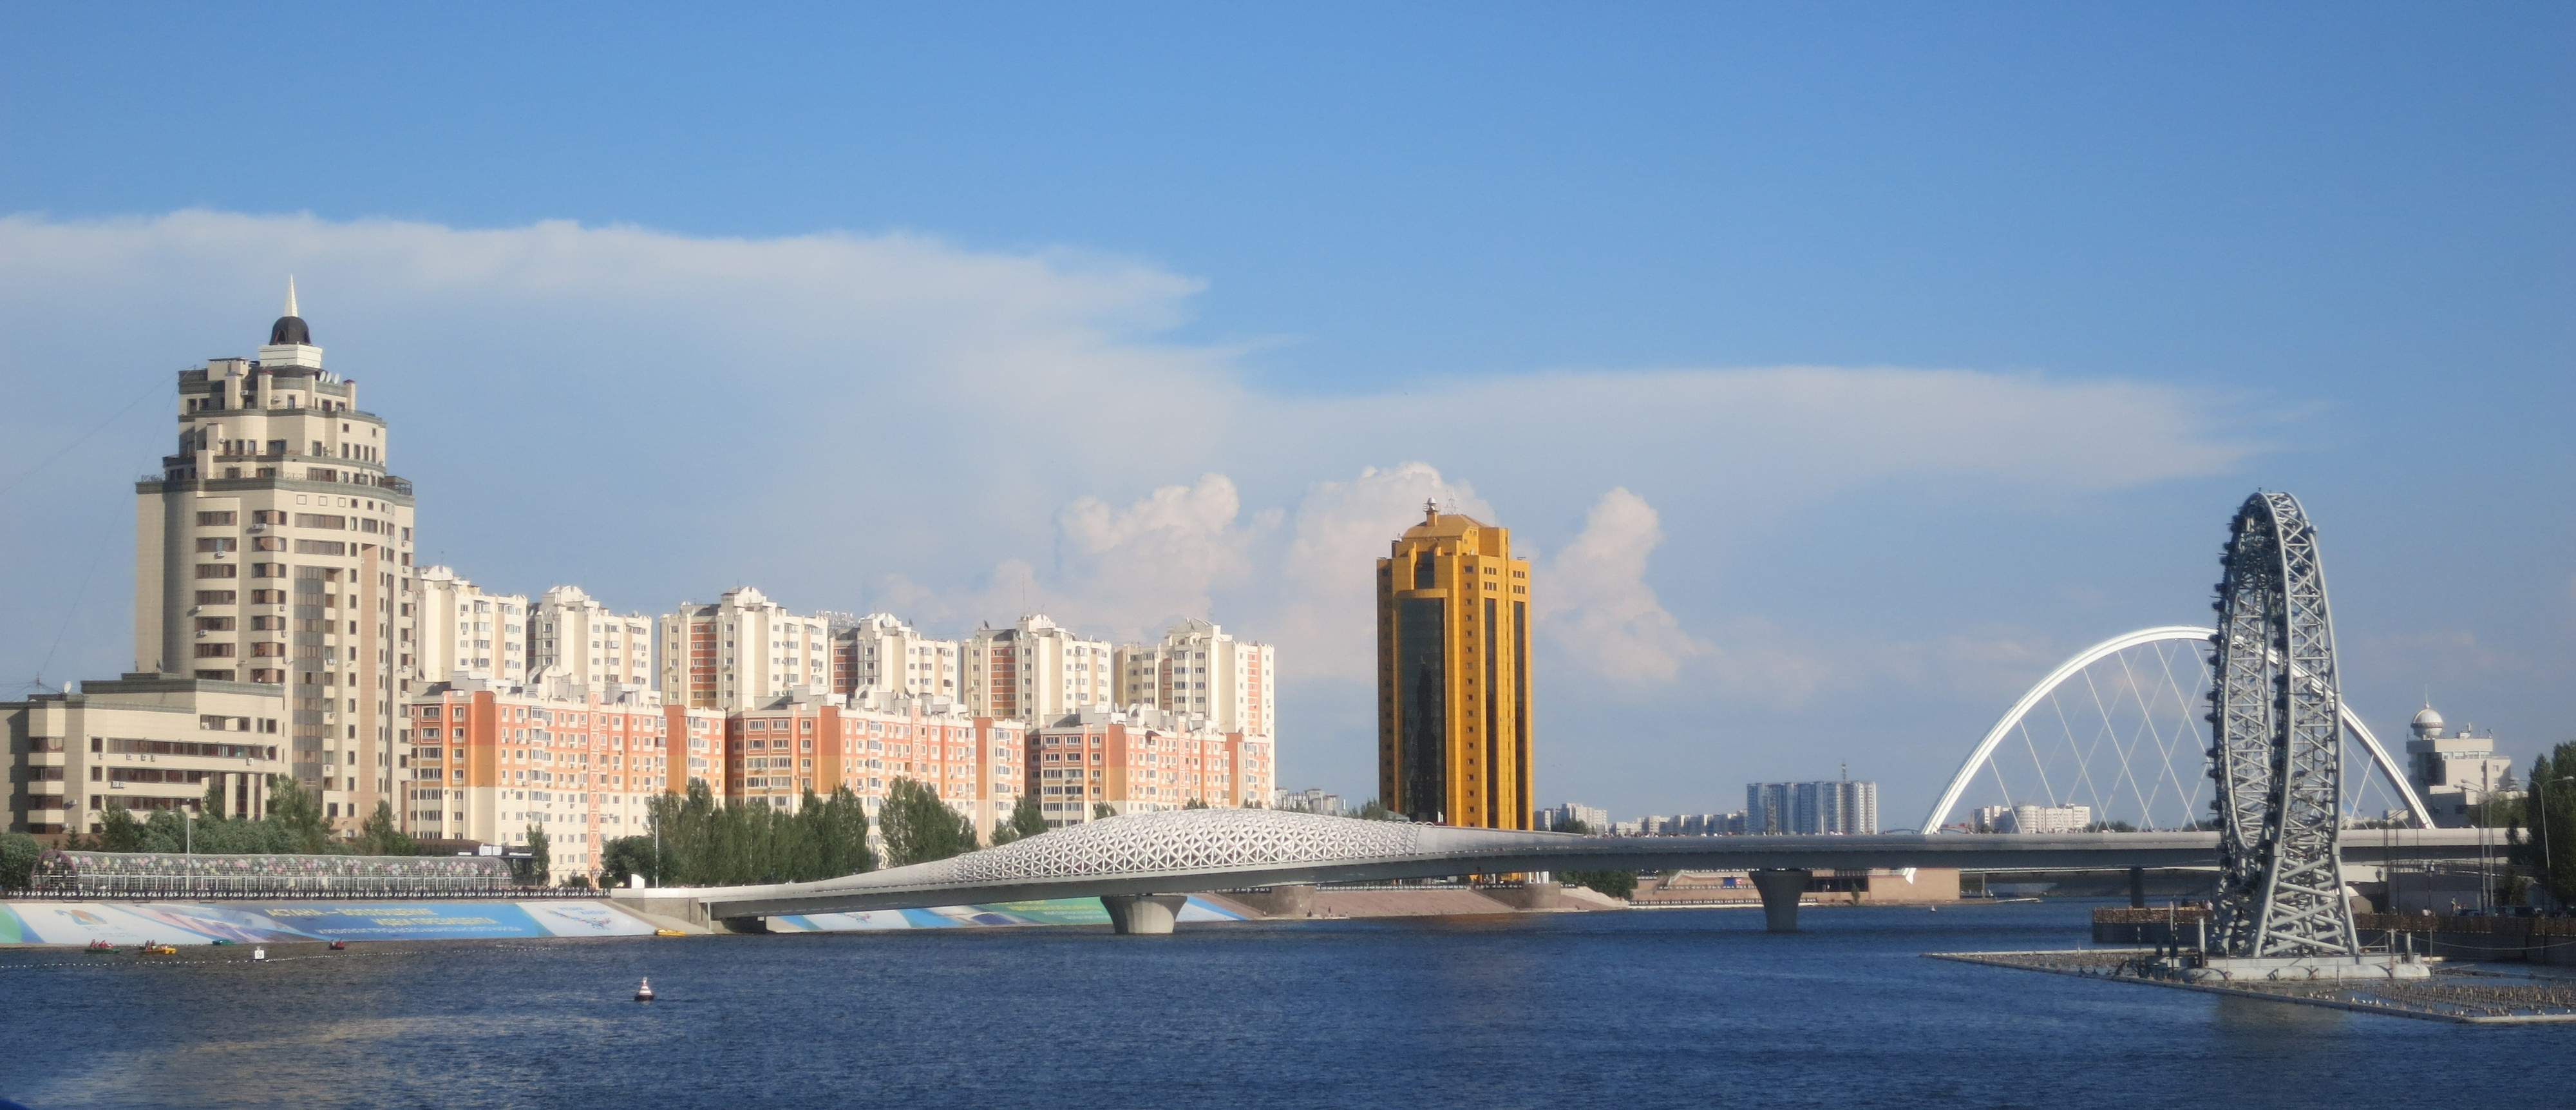 In what year did Astana become the capital of Kazakhstan Which city was the capital before